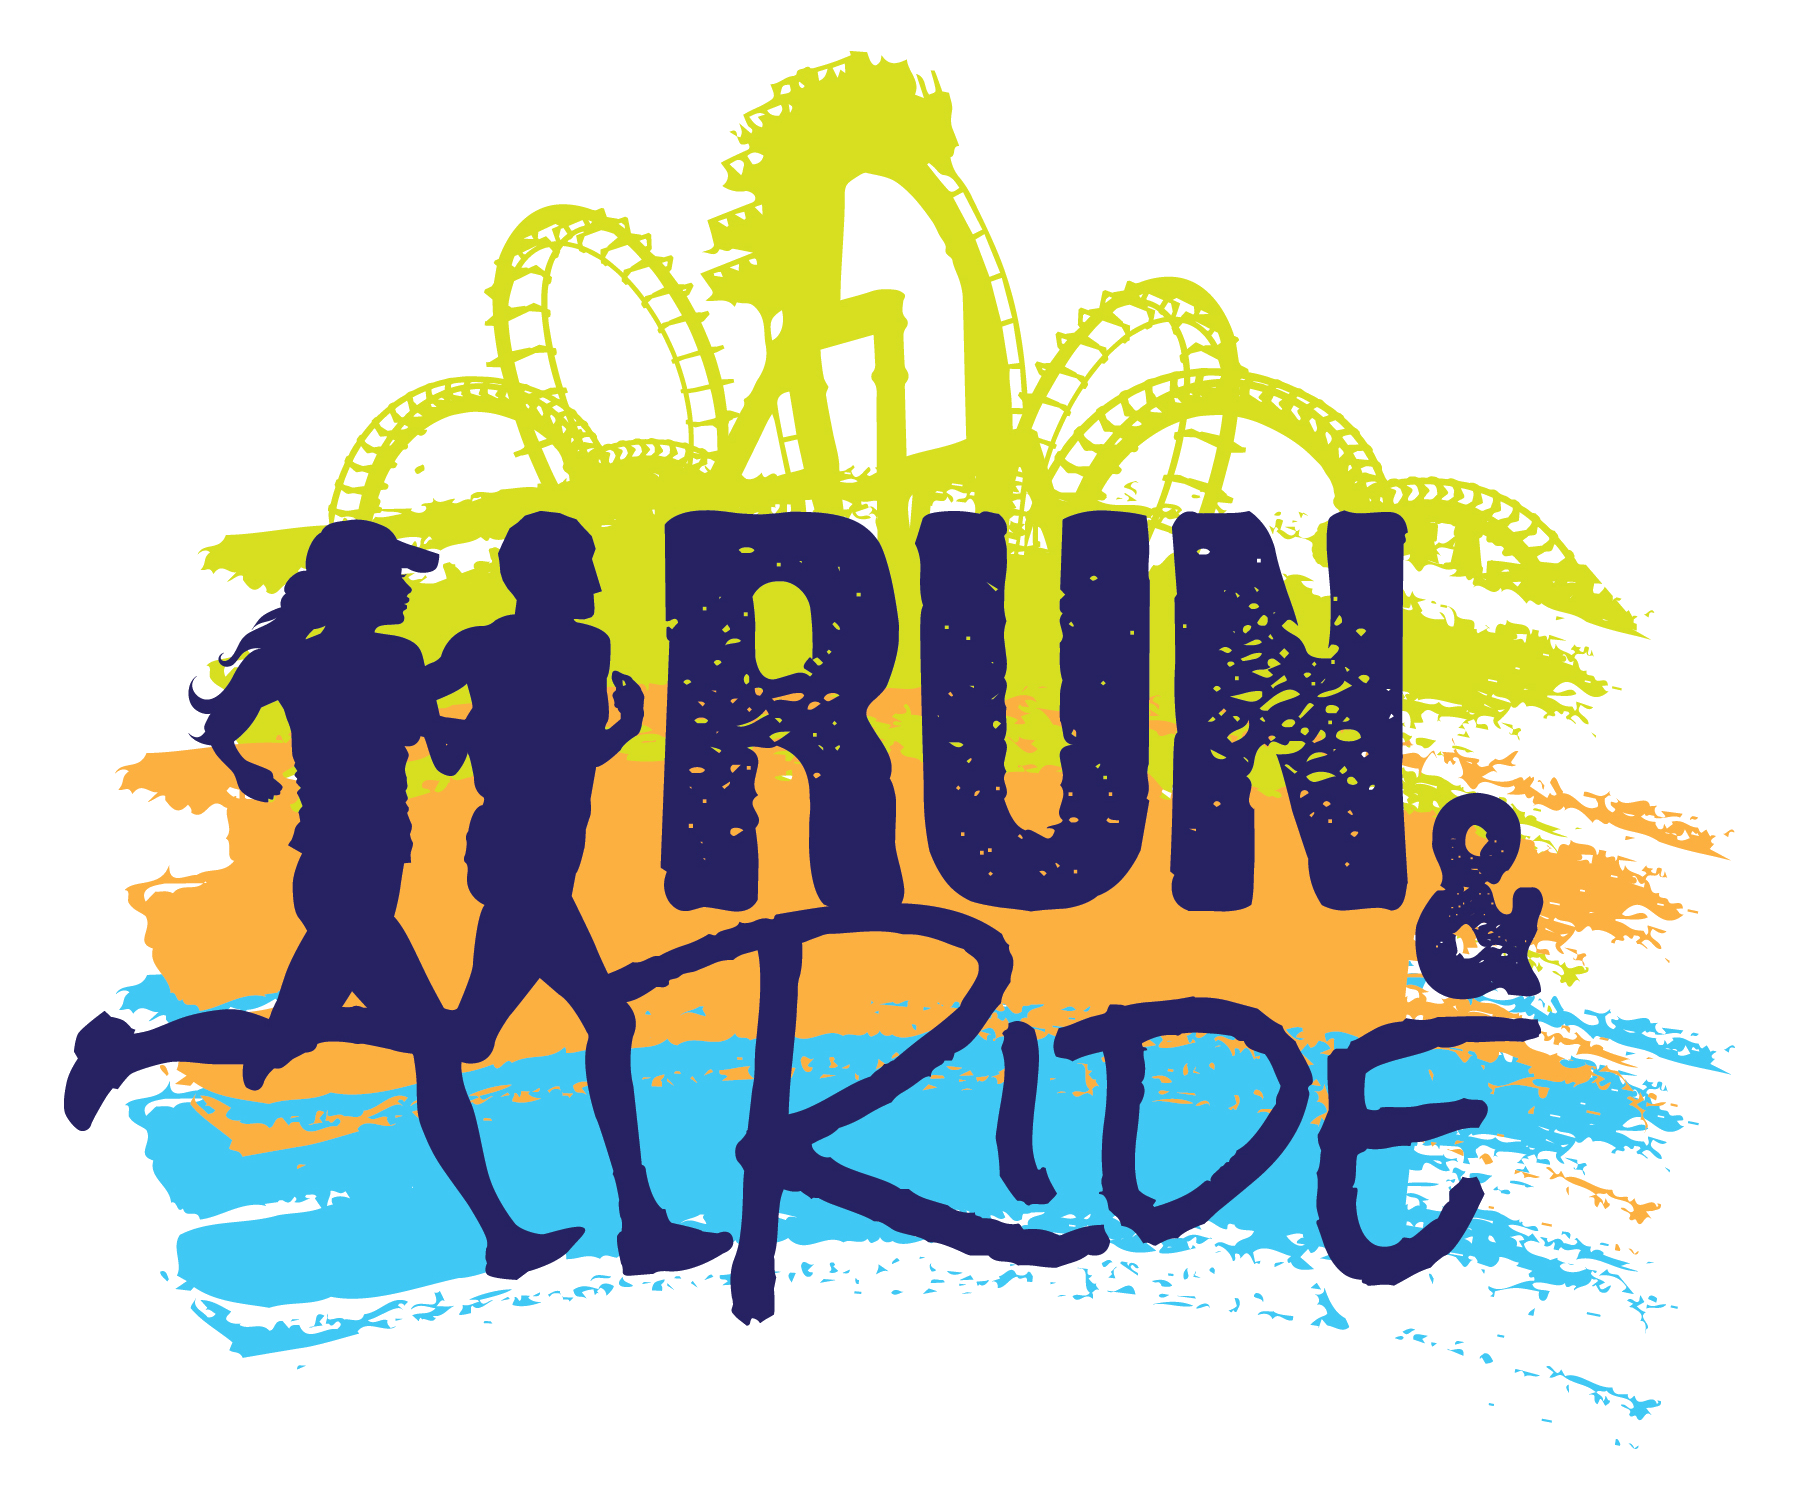 Run And Ride Valleyfair May 16 2015 Includes Park Admission Reg By 3 21 For Lowest Rate Run And Ride Racing Fun Races